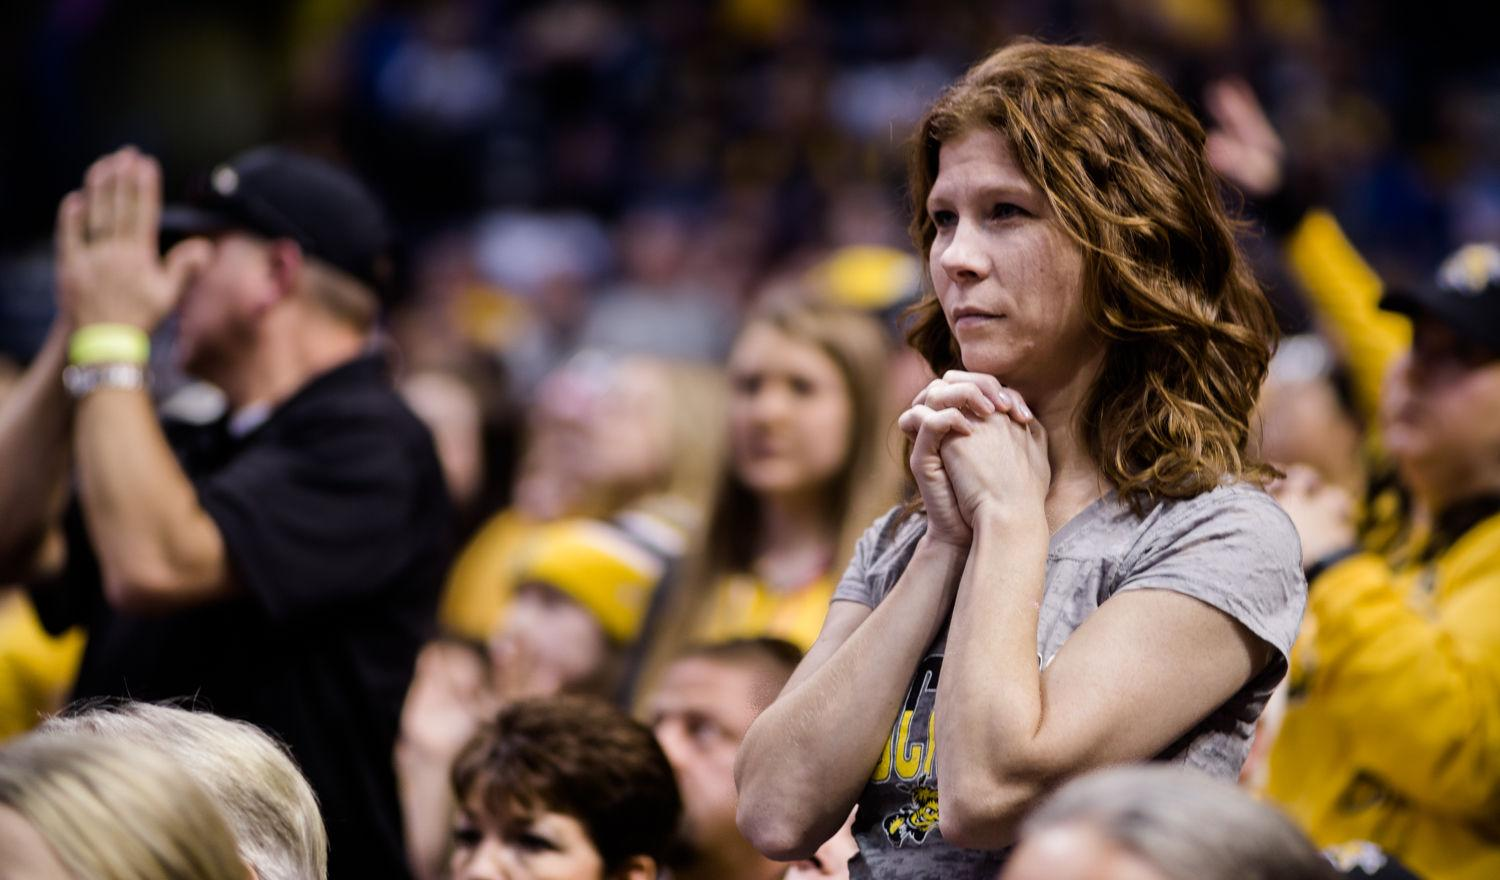 A Wichita State fan anxiously awaits the outcome of the semifinal game versus Northern Iowa in St. Louis on Saturday.